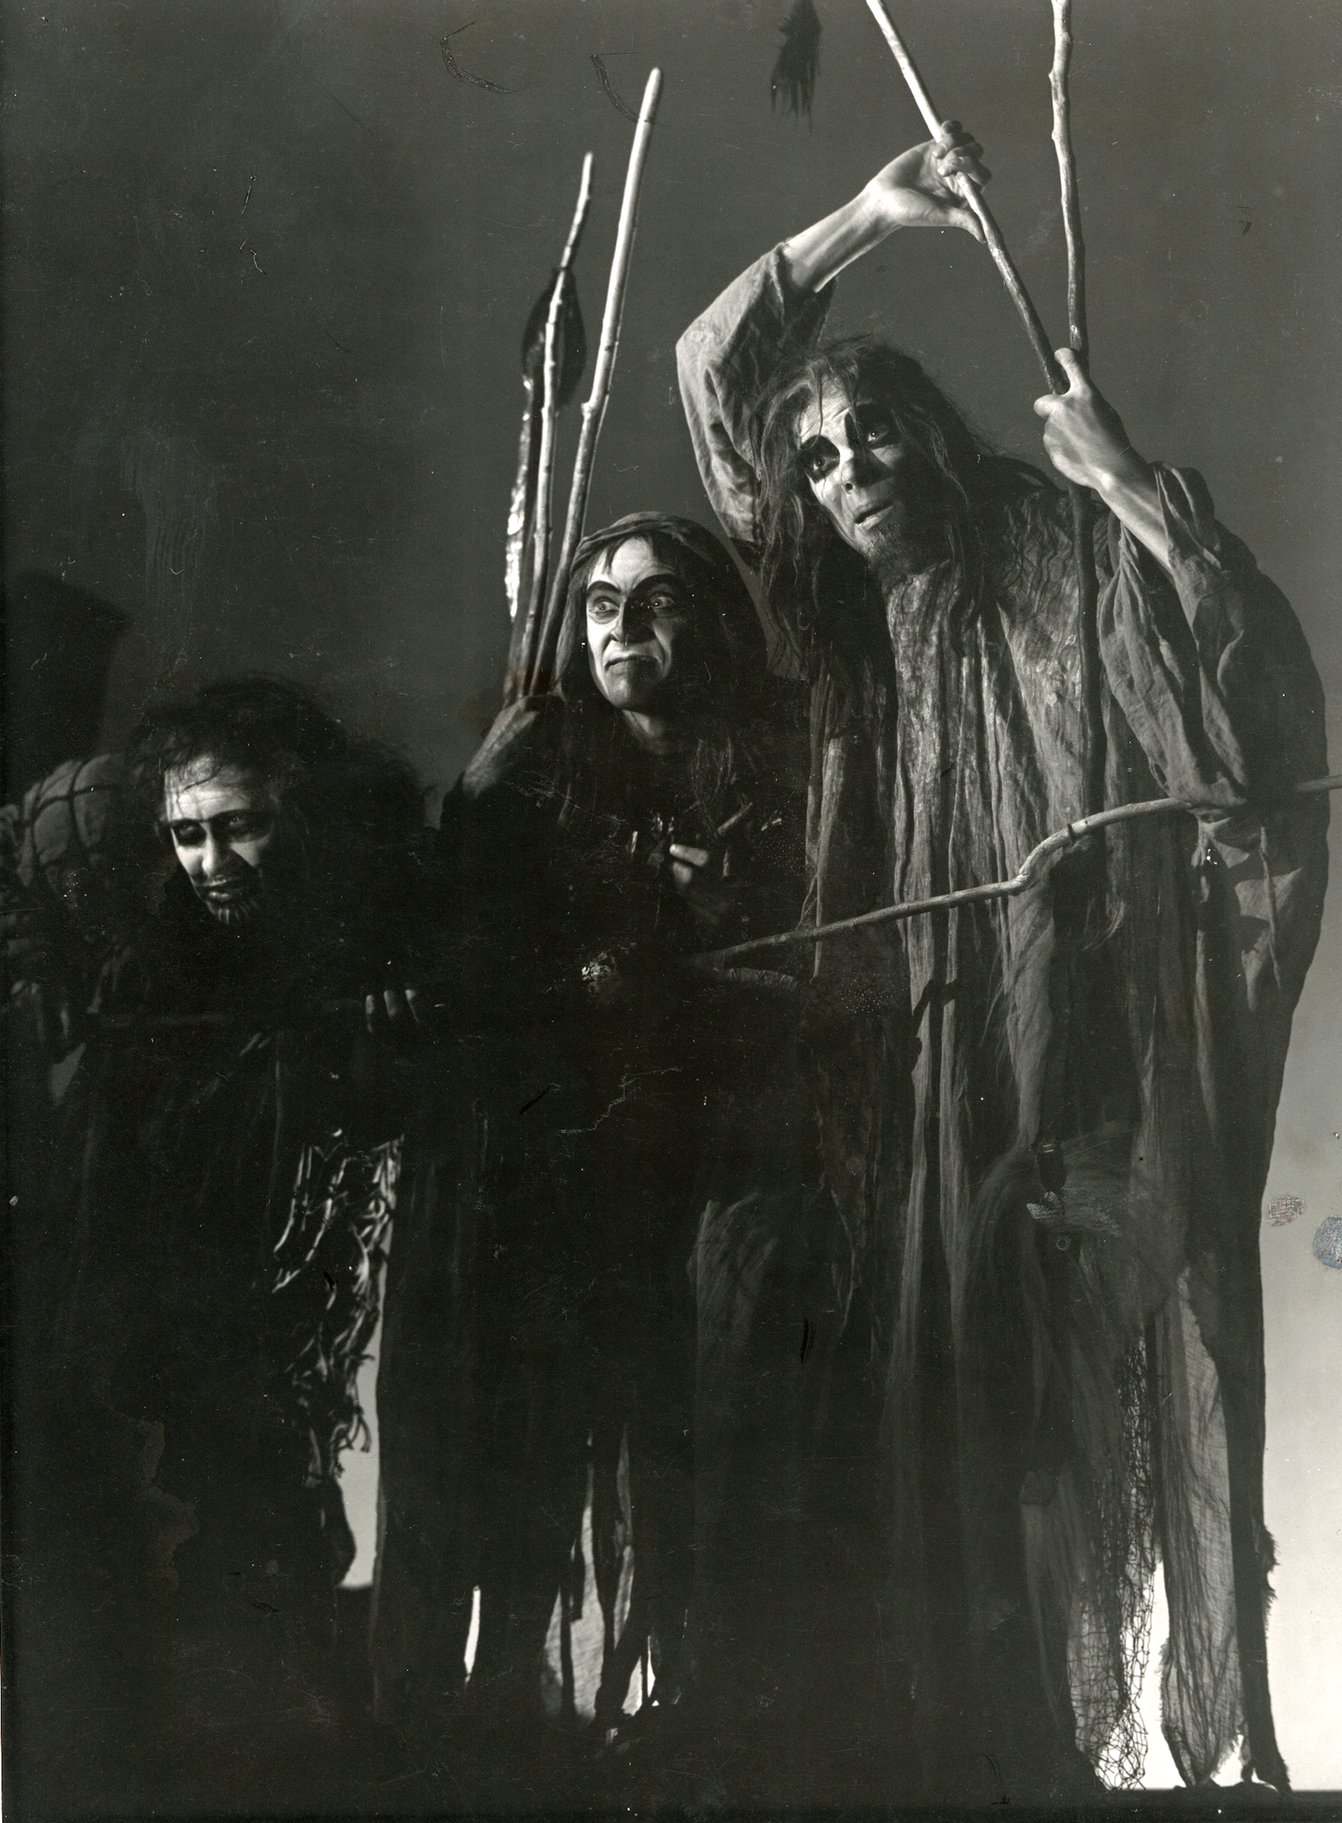 The three witches with long hair, rags and sticks.